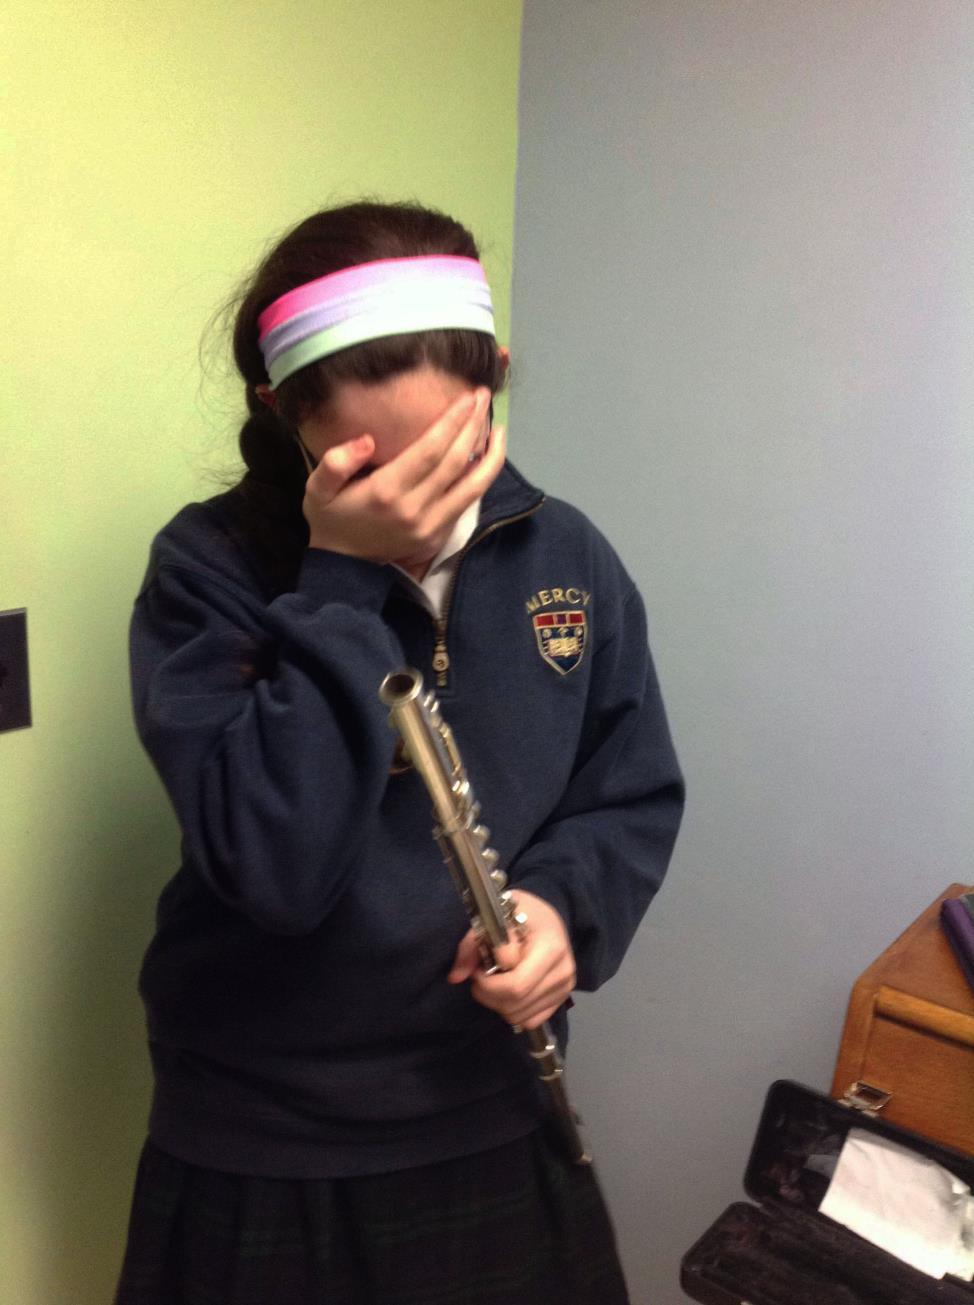 While Scarchilli is intently focused on becoming a better musician, she has a unique ability to know when comedic relief is needed. While practicing flute, she frequently breaks down in to fits of uncontrollable laughter.